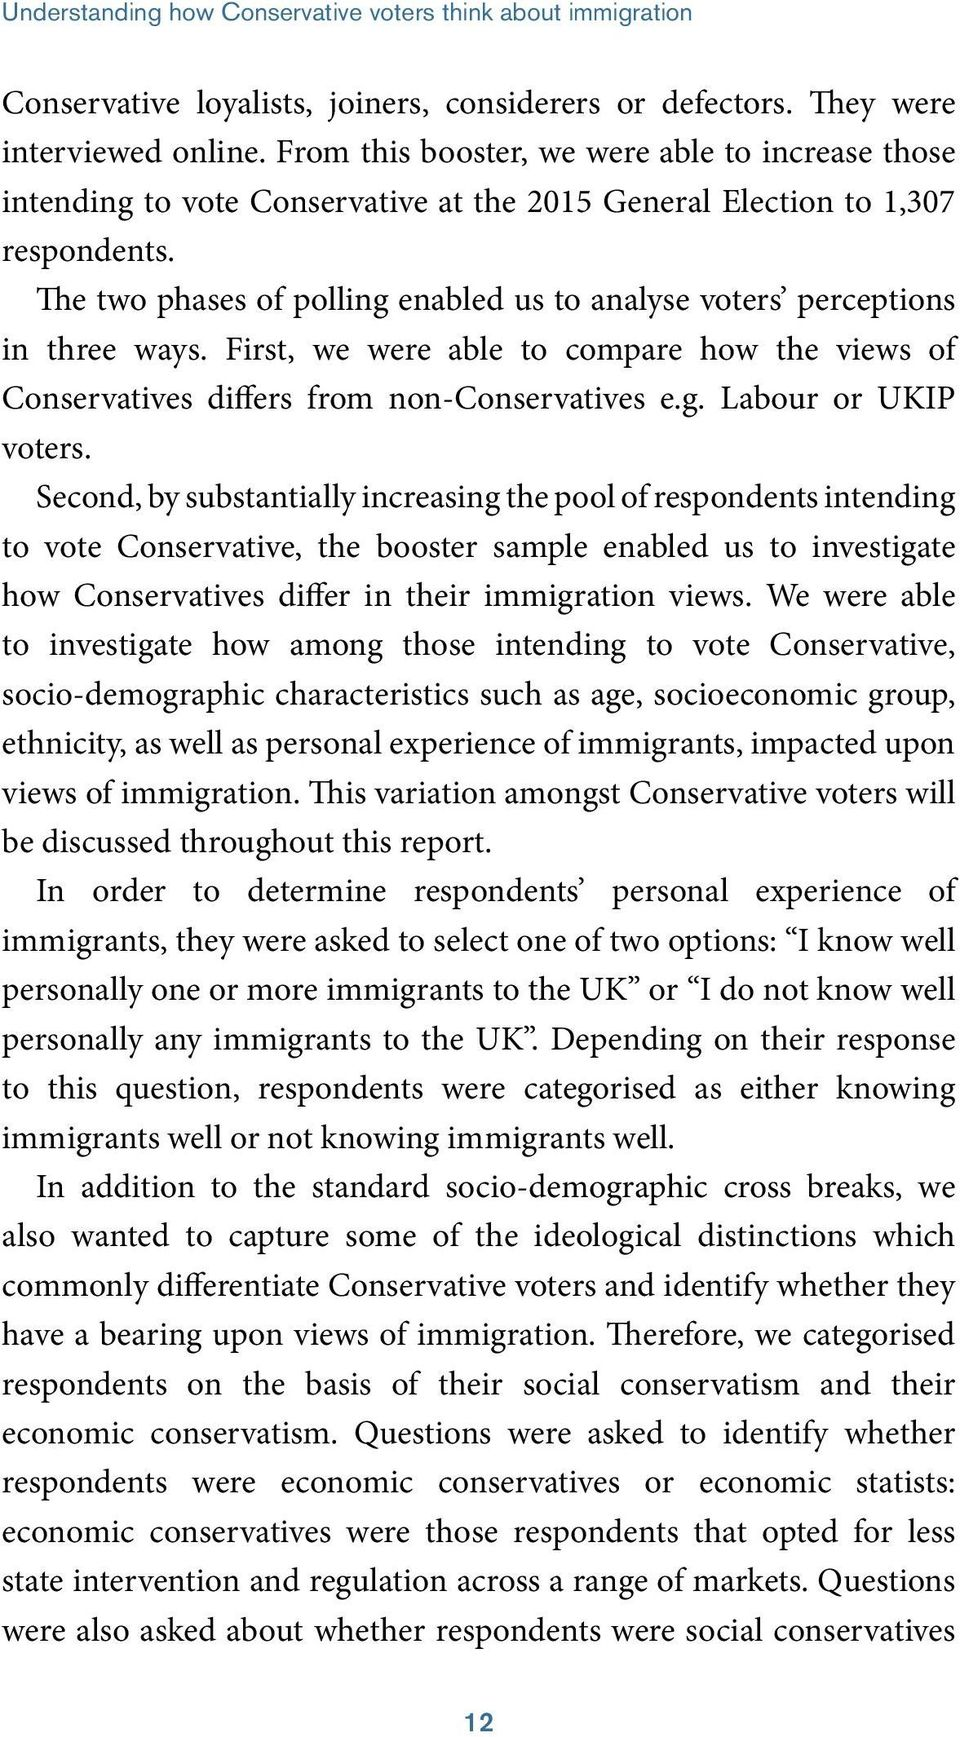 The two phases of polling enabled us to analyse voters perceptions in three ways. First, we were able to compare how the views of Conservatives differs from non-conservatives e.g. Labour or UKIP voters.